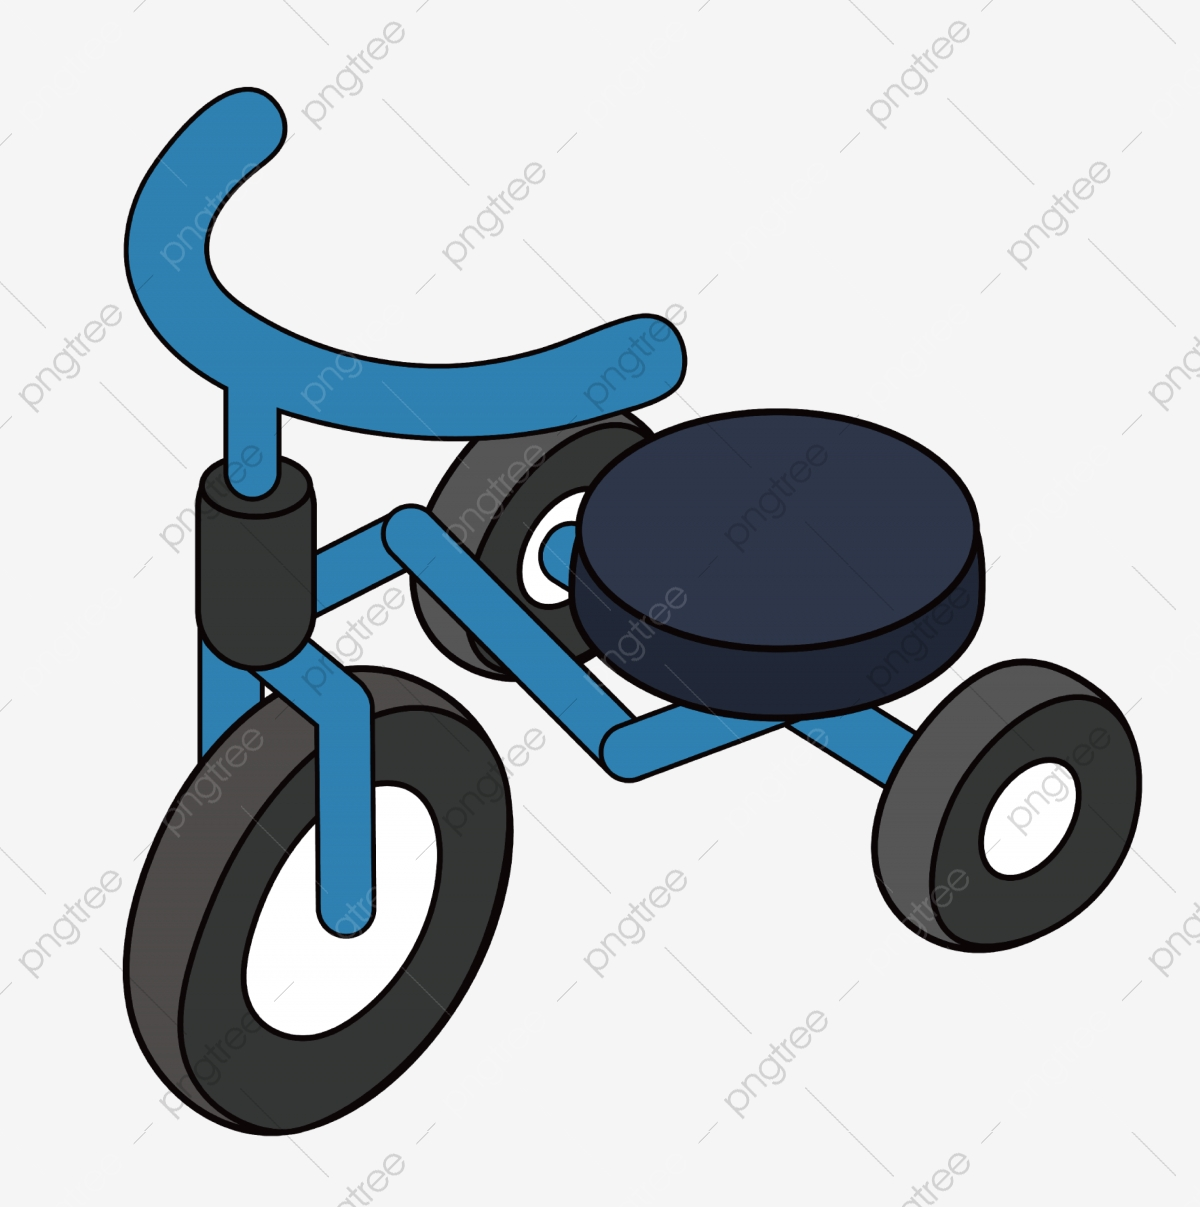 Childrens Tricycle Illustration Three Wheeled Toy Car Blue ... clip art free library